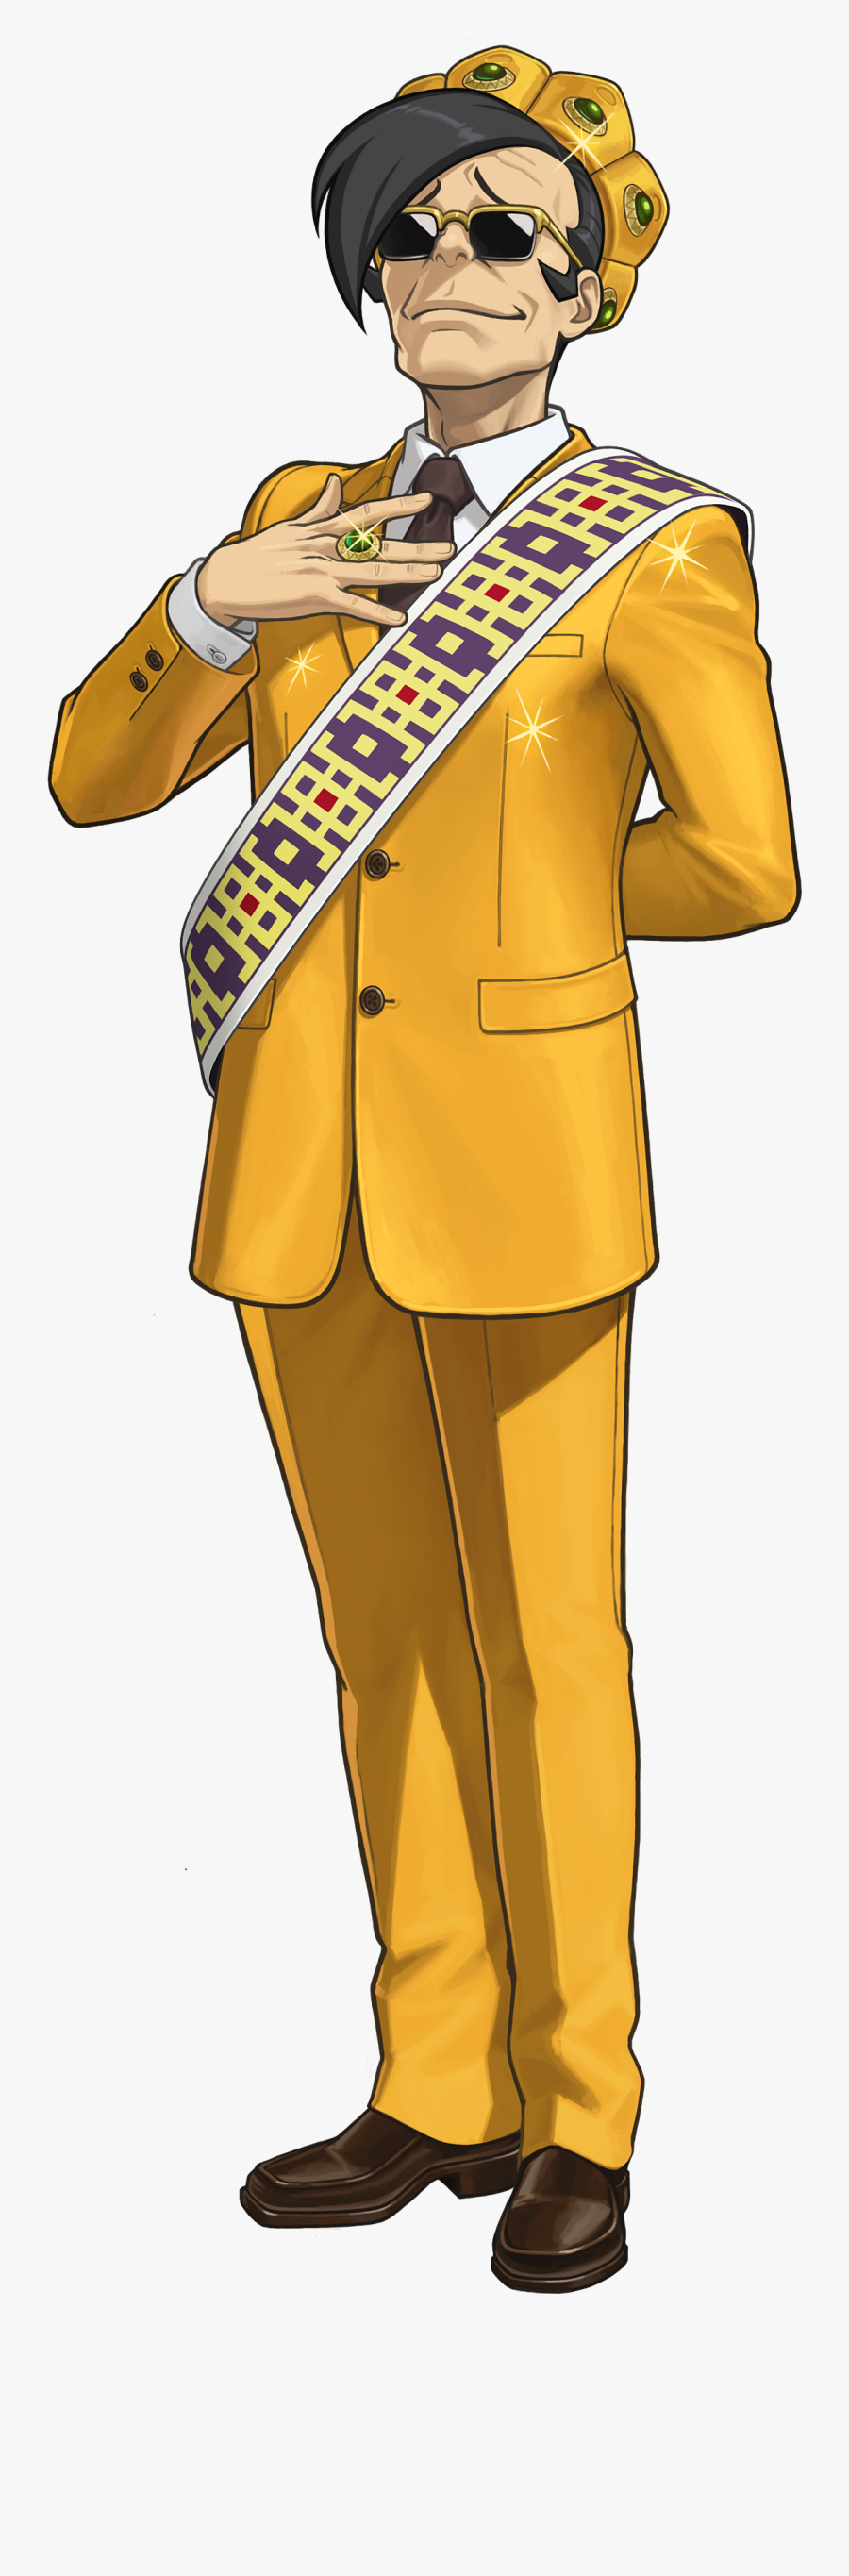 Ace Attorney Clipart Spirit - Ace Attorney Spirit Of Justice Payne, Transparent Clipart